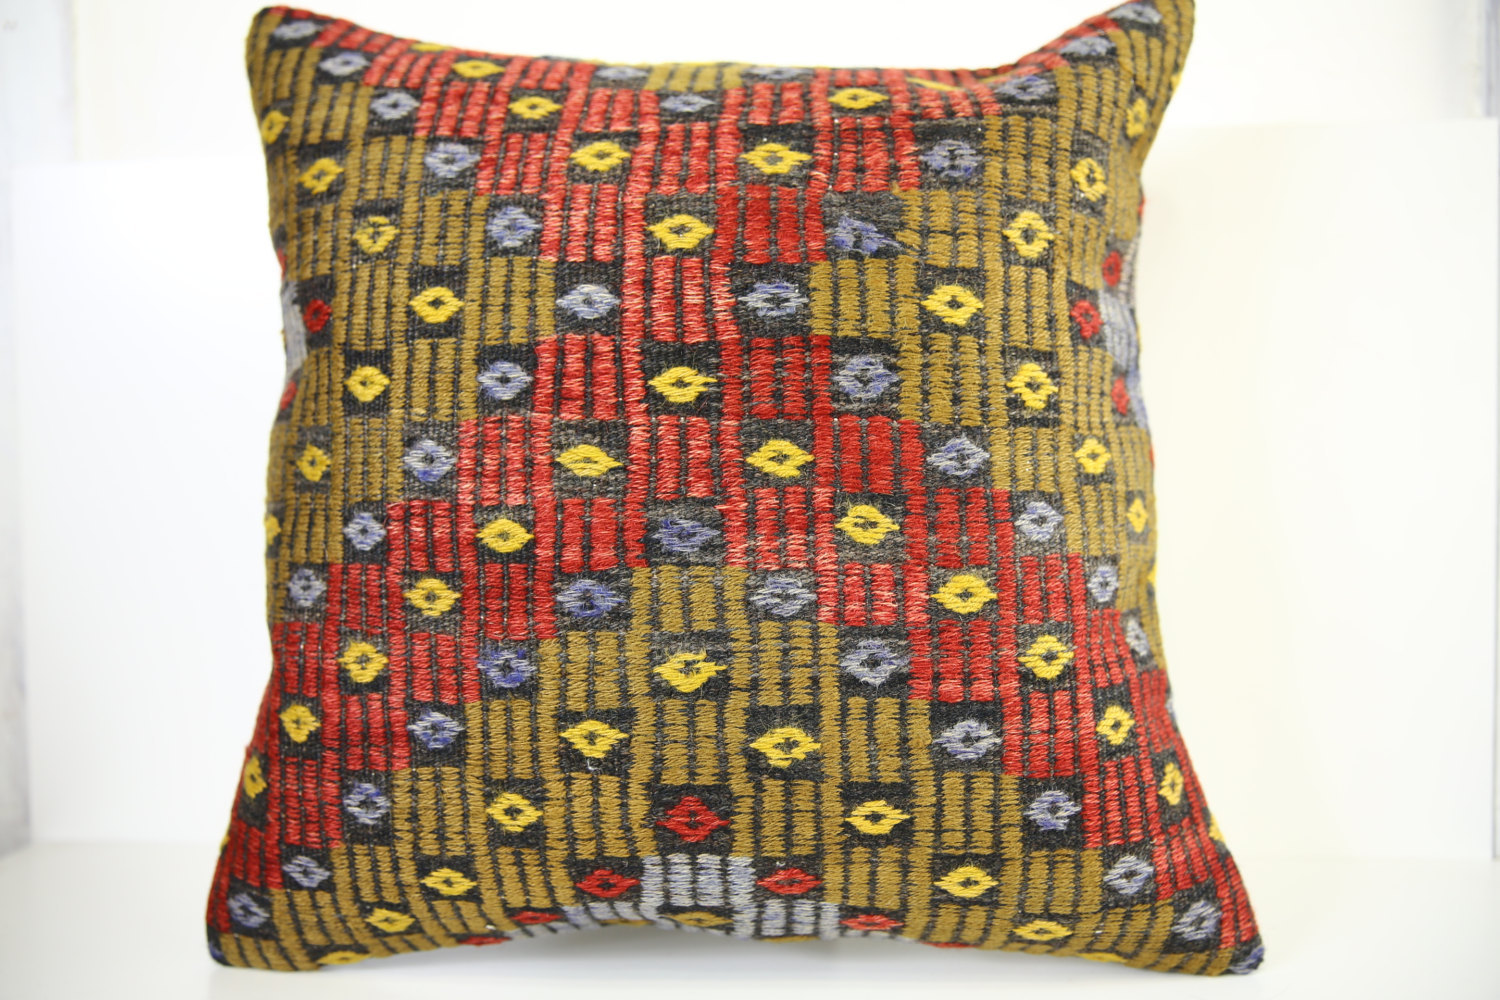 Kilim Pillows | 20x20 | Decorative Pillows | 1493 | Accent Pillows,turkish kilim